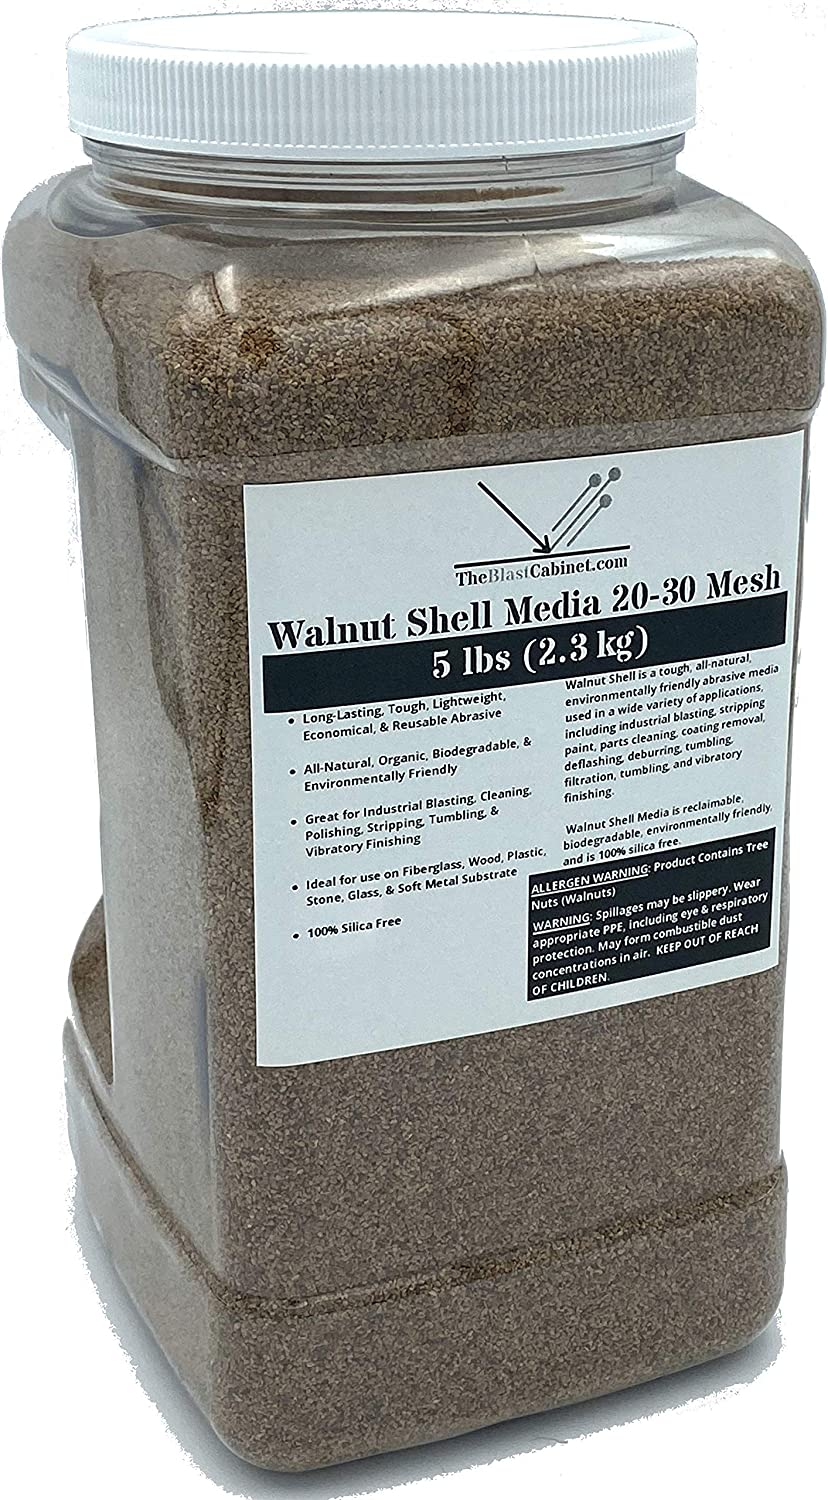 5 lbs Walnut Shell Abrasives Media by TheBlastCabinet Medium to Fine Grit 20-30 Mesh for Industrial Blasting, Cleaning, Stripping, Tumbling, Polishing Applications